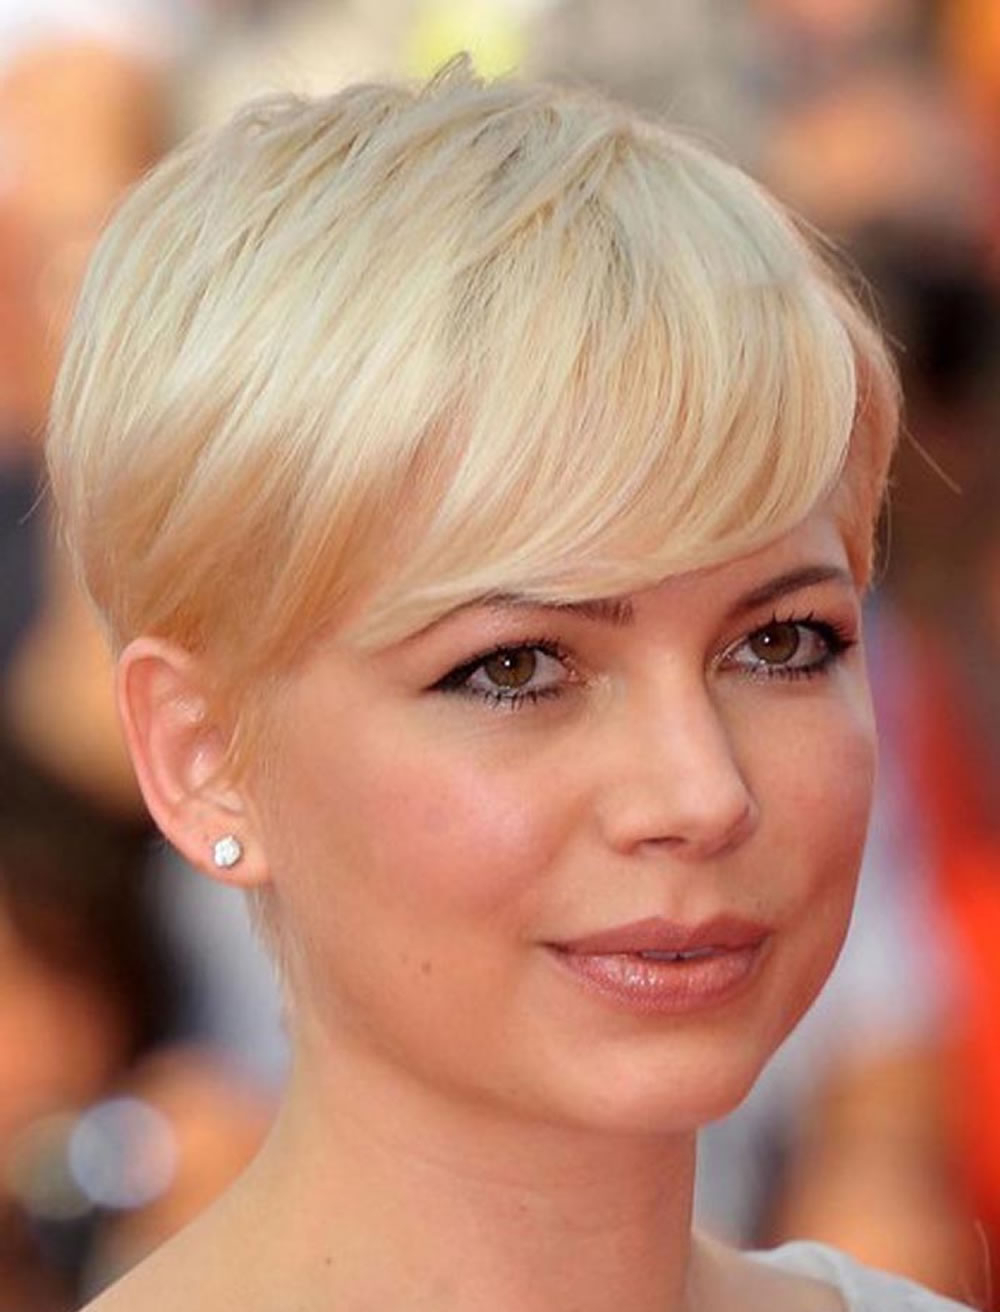 Short Haircuts For Round Face Thin Hair Ideas For 2018 – Hairstyles For Pictures Of Short Hairstyles For Round Faces (View 20 of 25)